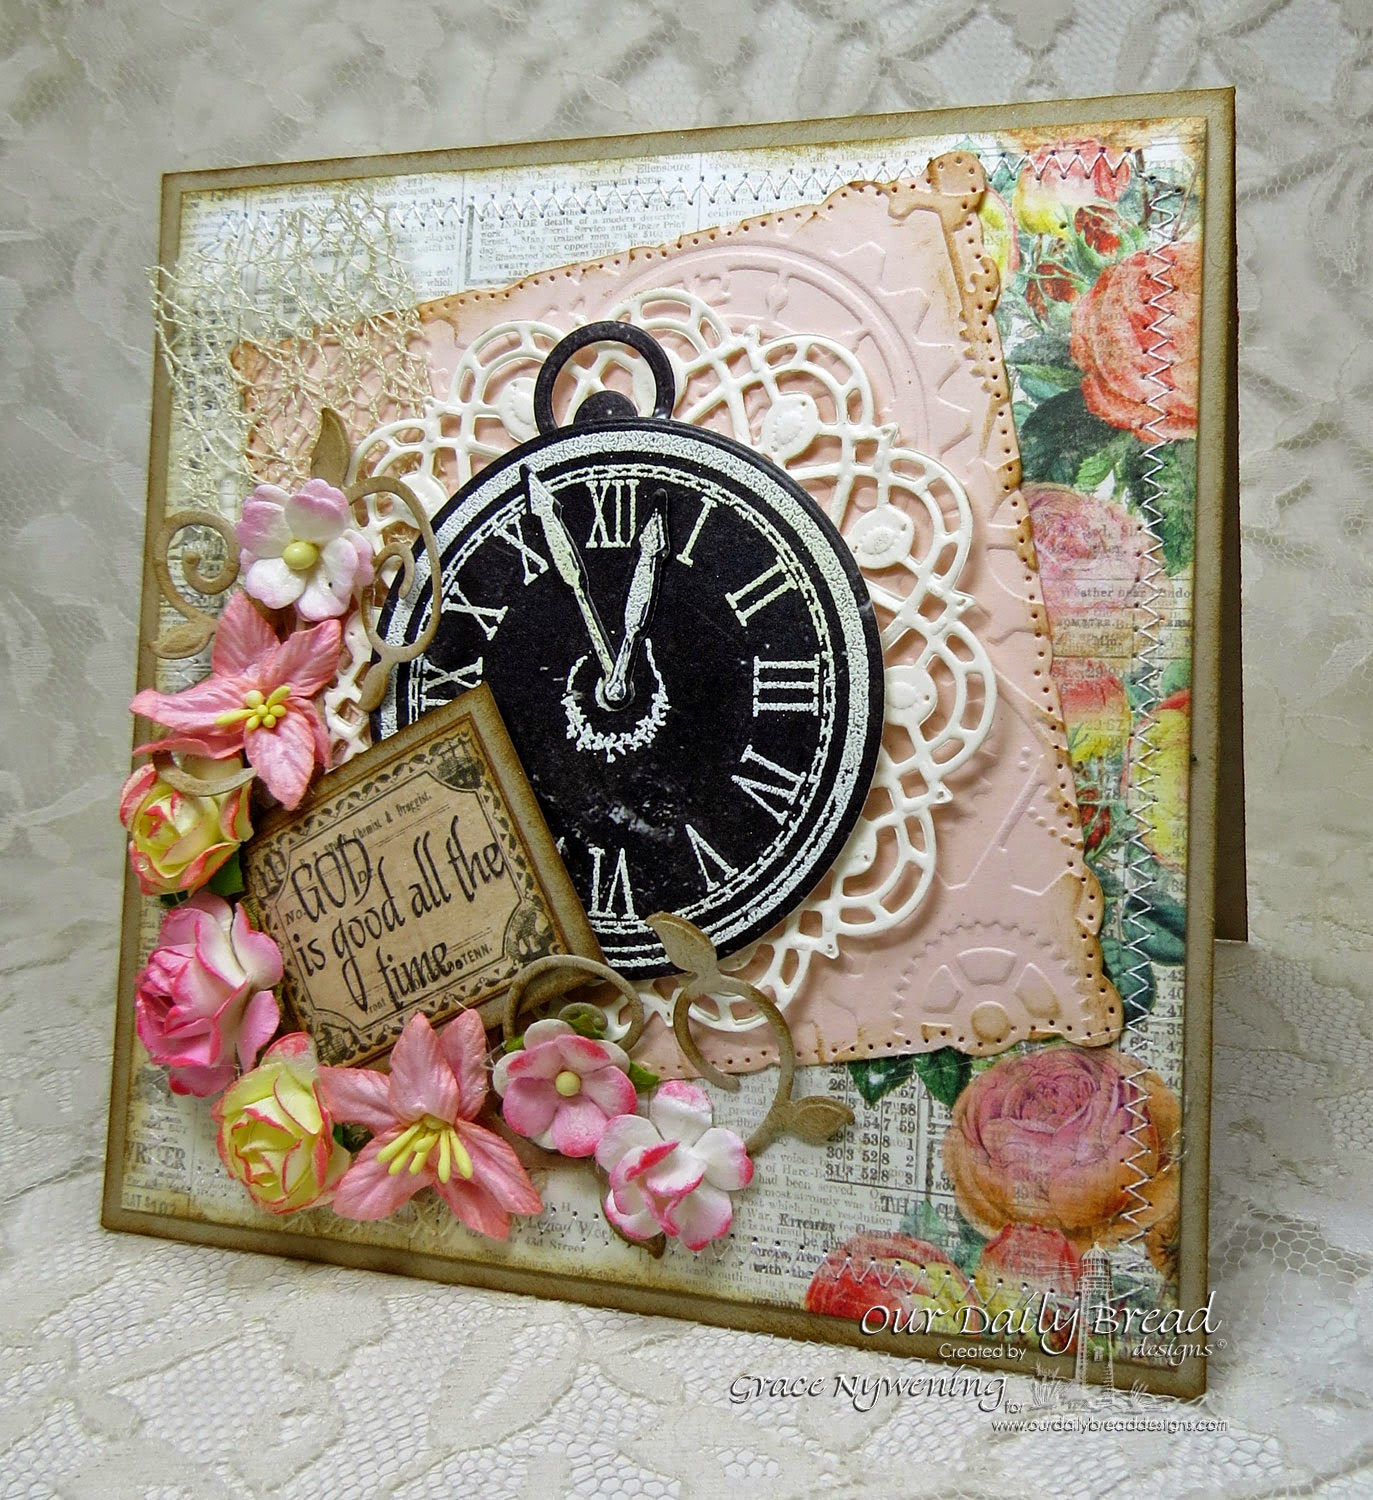 ODBD stamps: God's Timing, designed by Grace Nywening